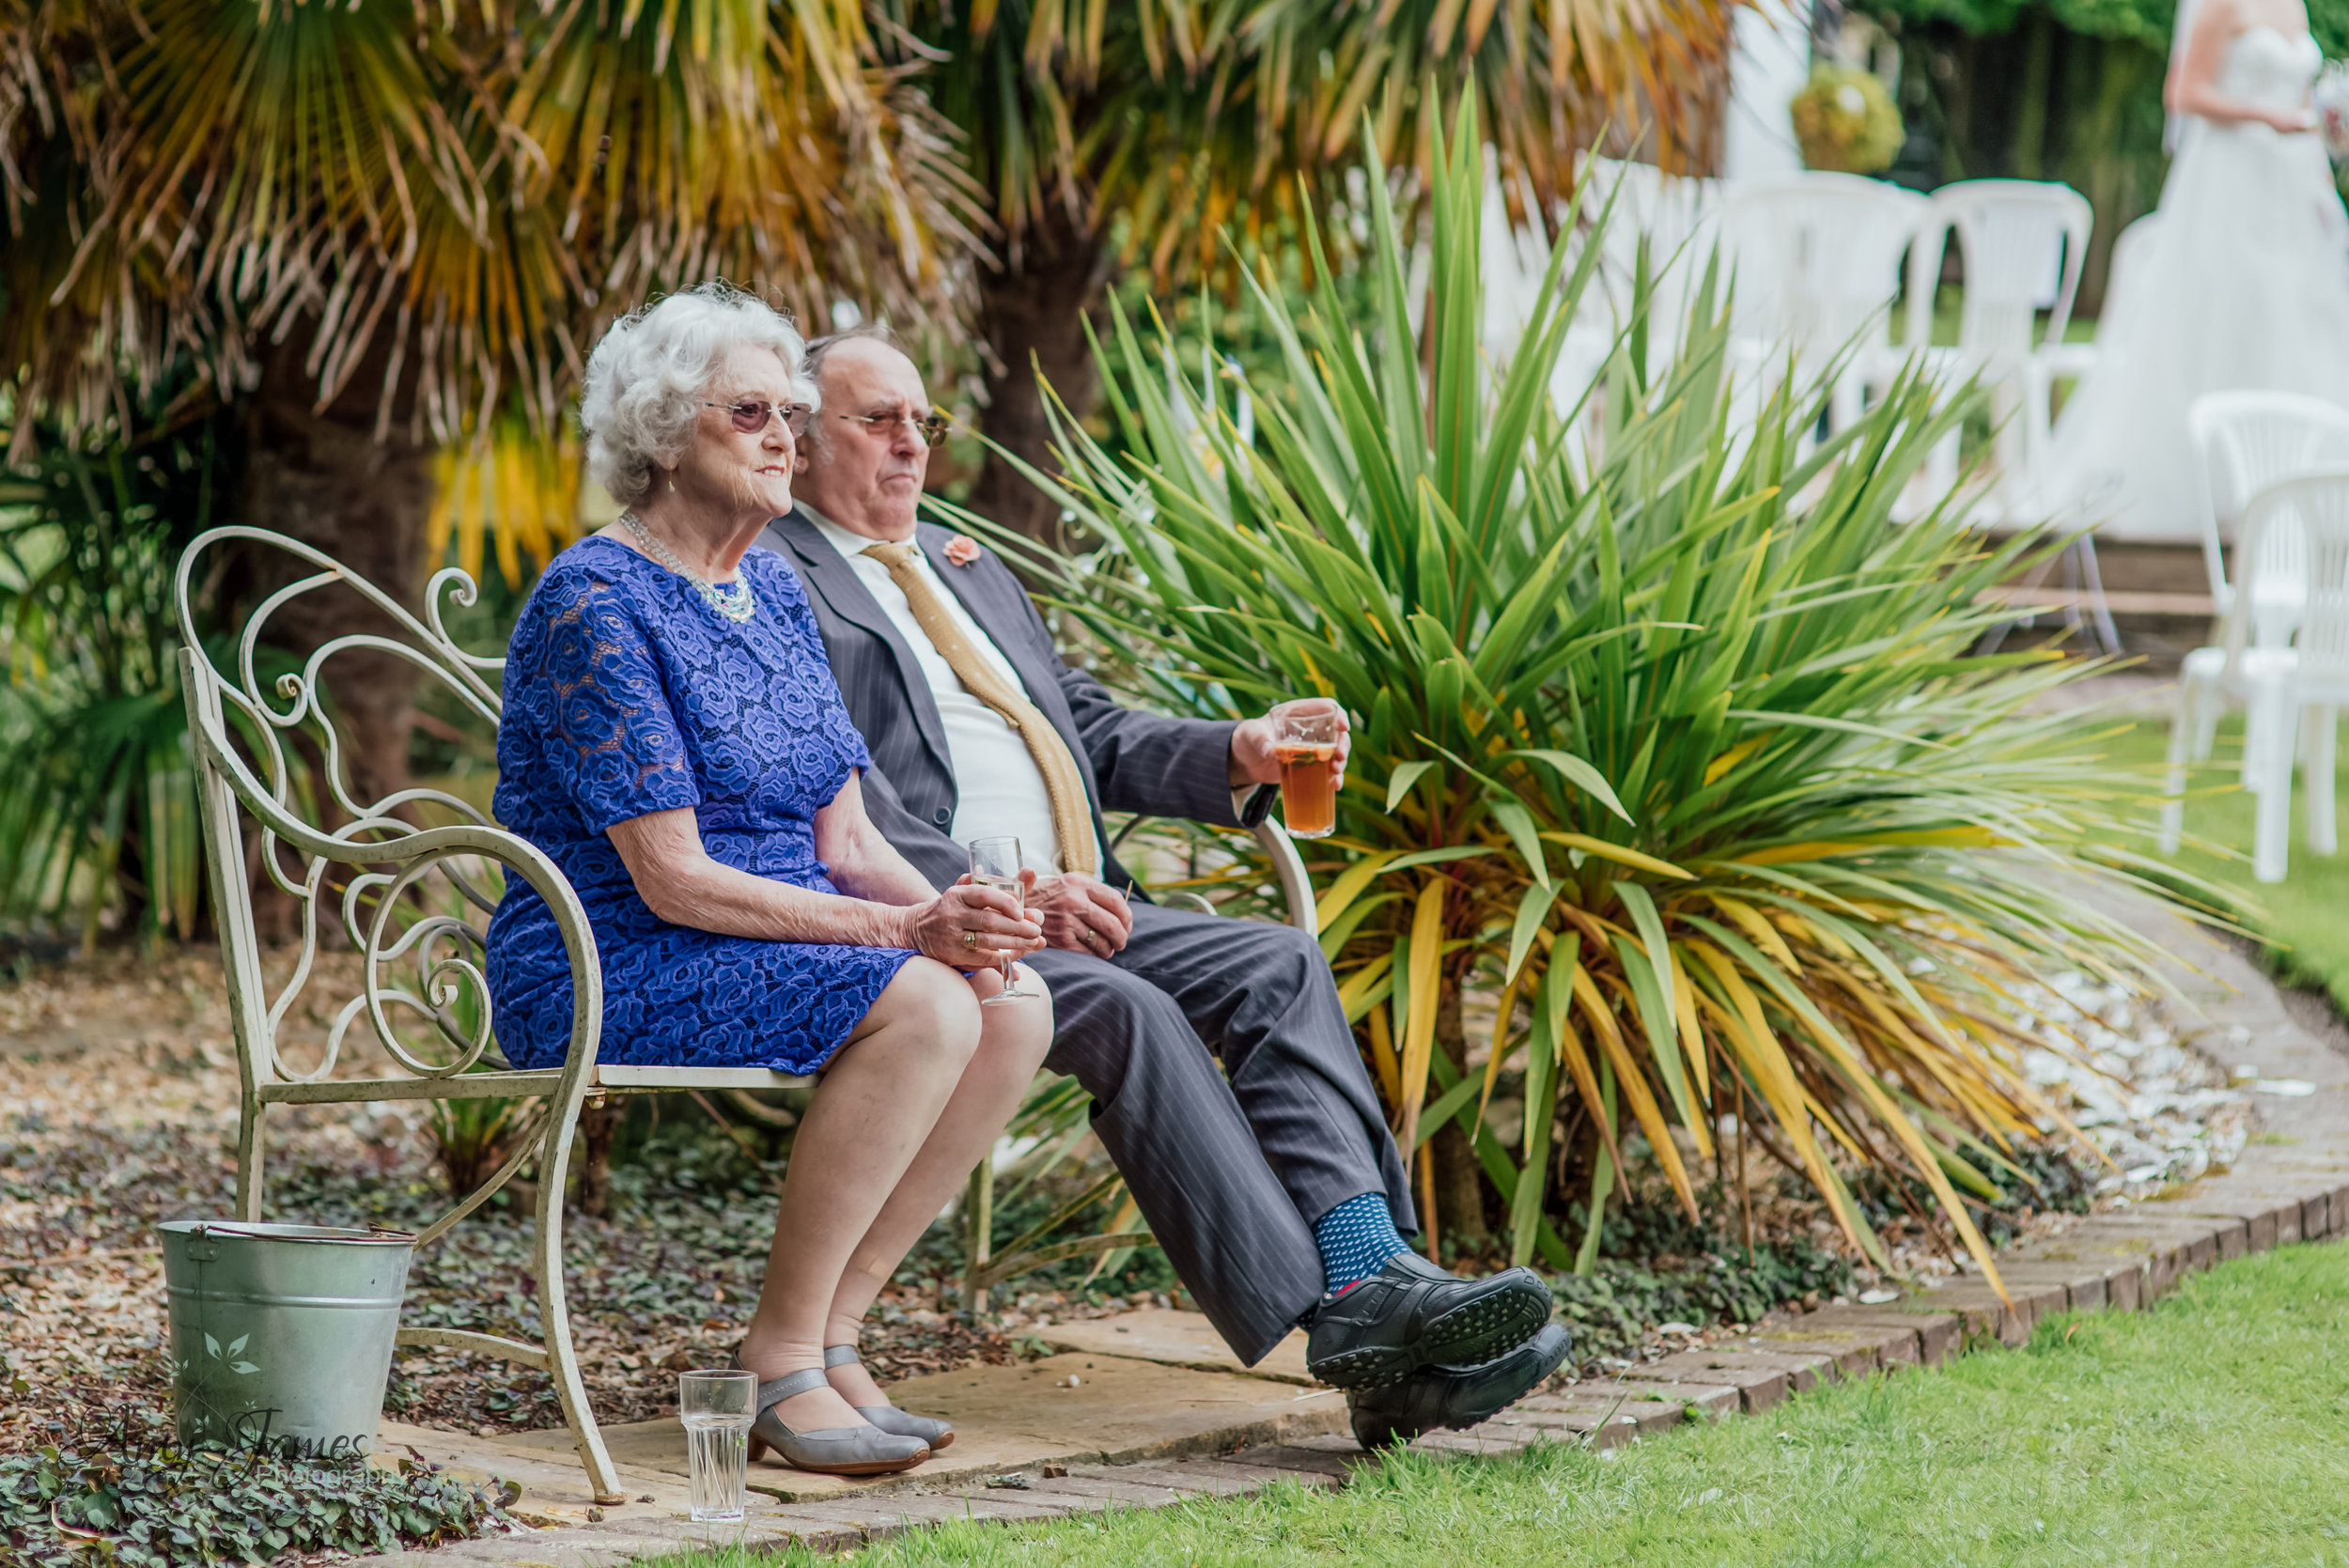 Elderly guests at outdoor wedding ceremony by Amy James Photography at Taplins Place Hampshire wedding photographer